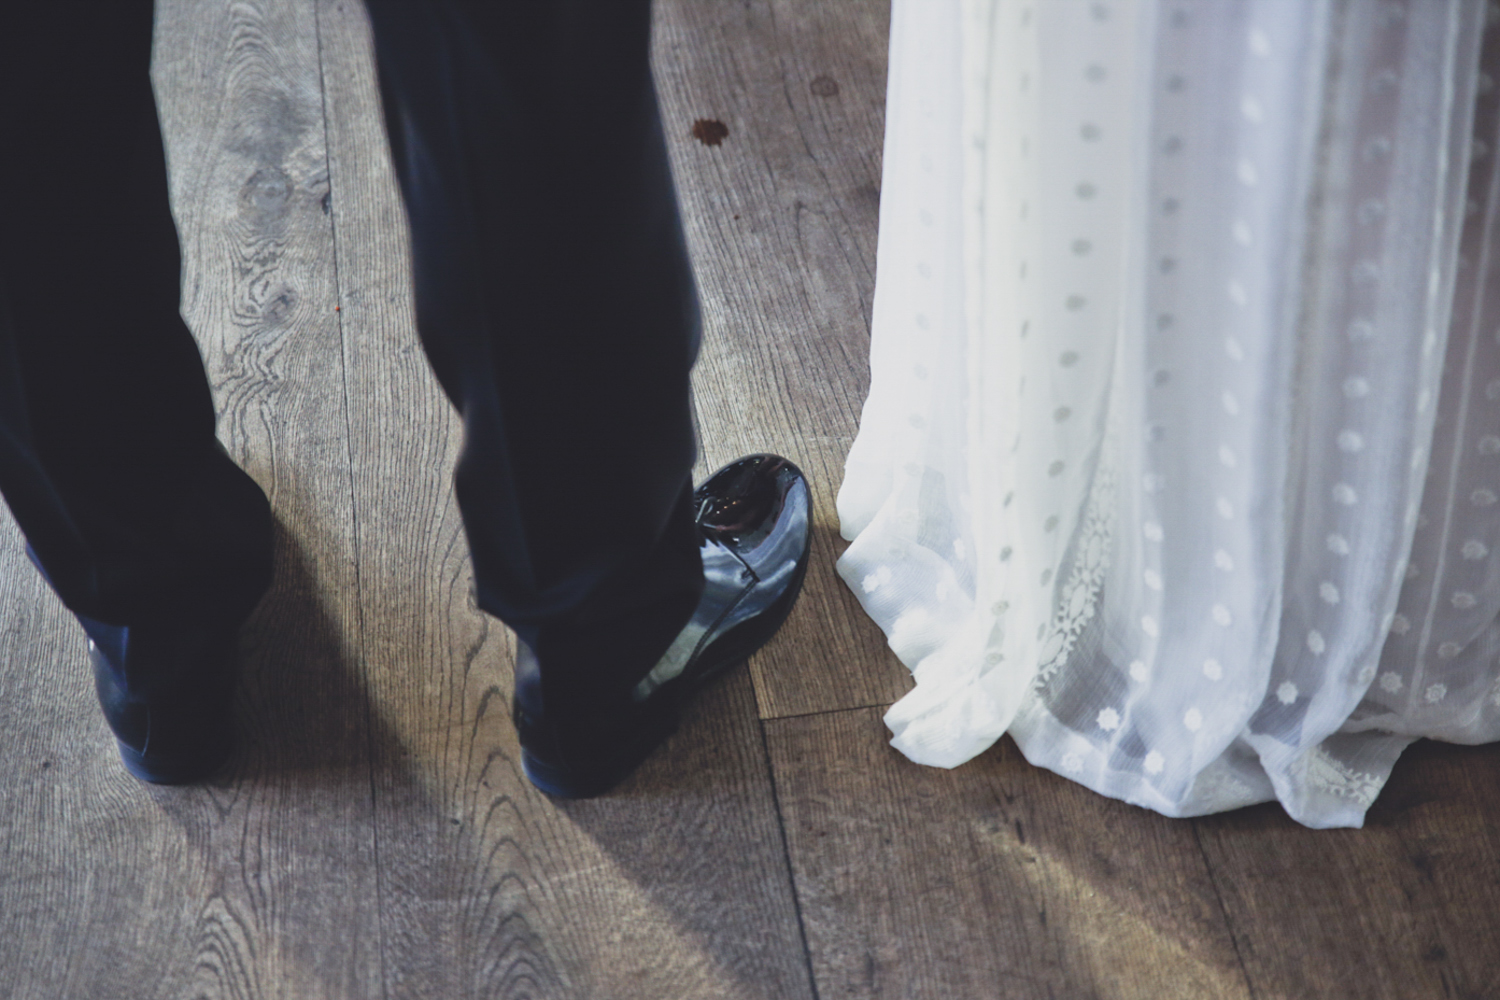 candid-wedding-photography-melbourne-victoria-8989